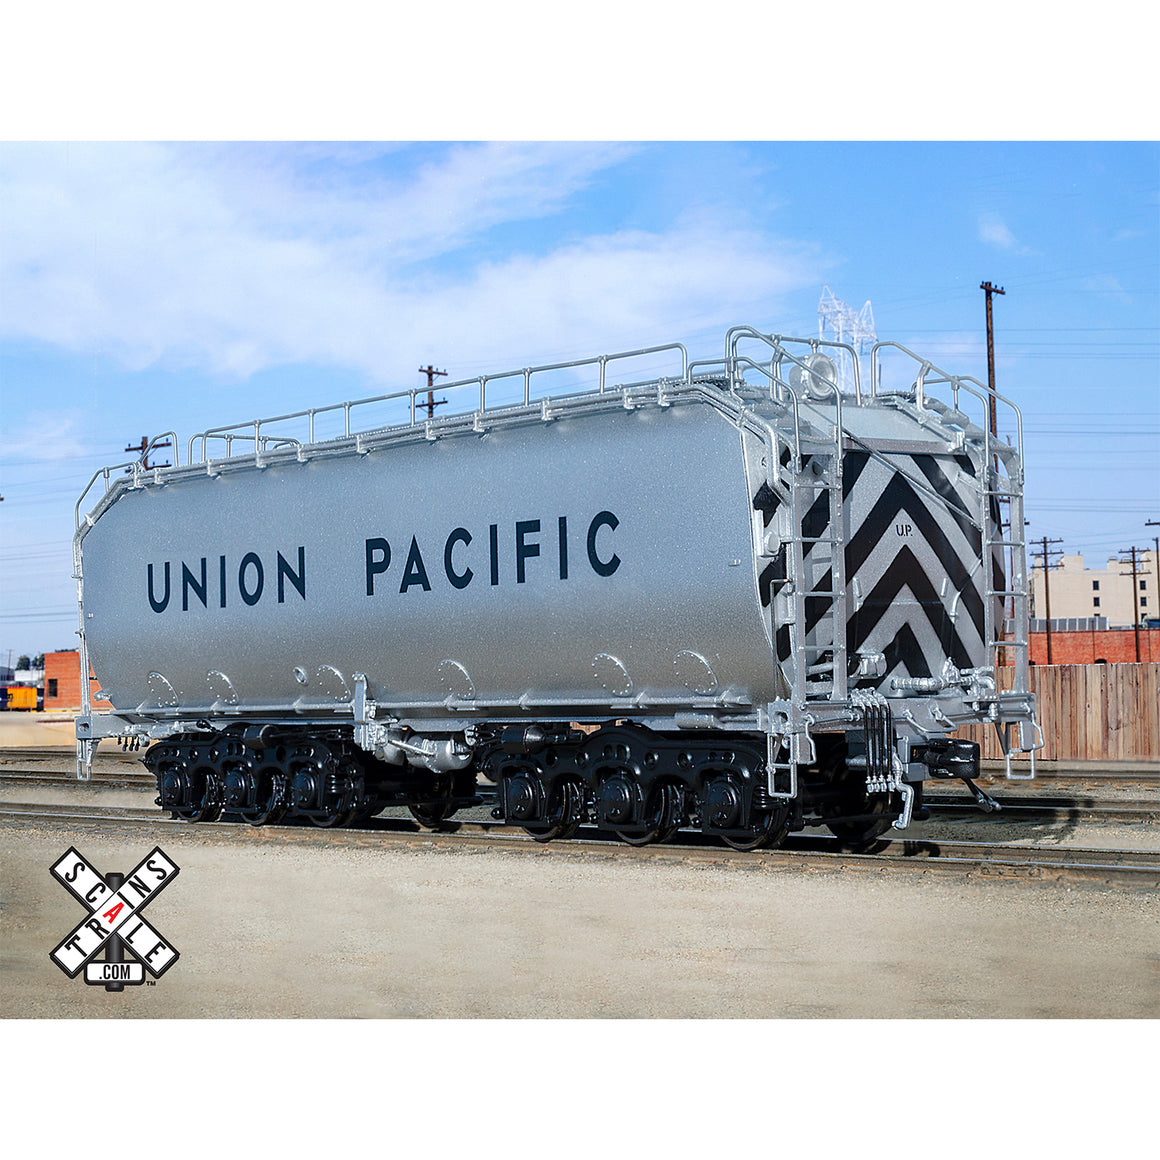 HO Scale: Rivet Counter - Union Pacific Diesel Fuel Tender - Black Trucks